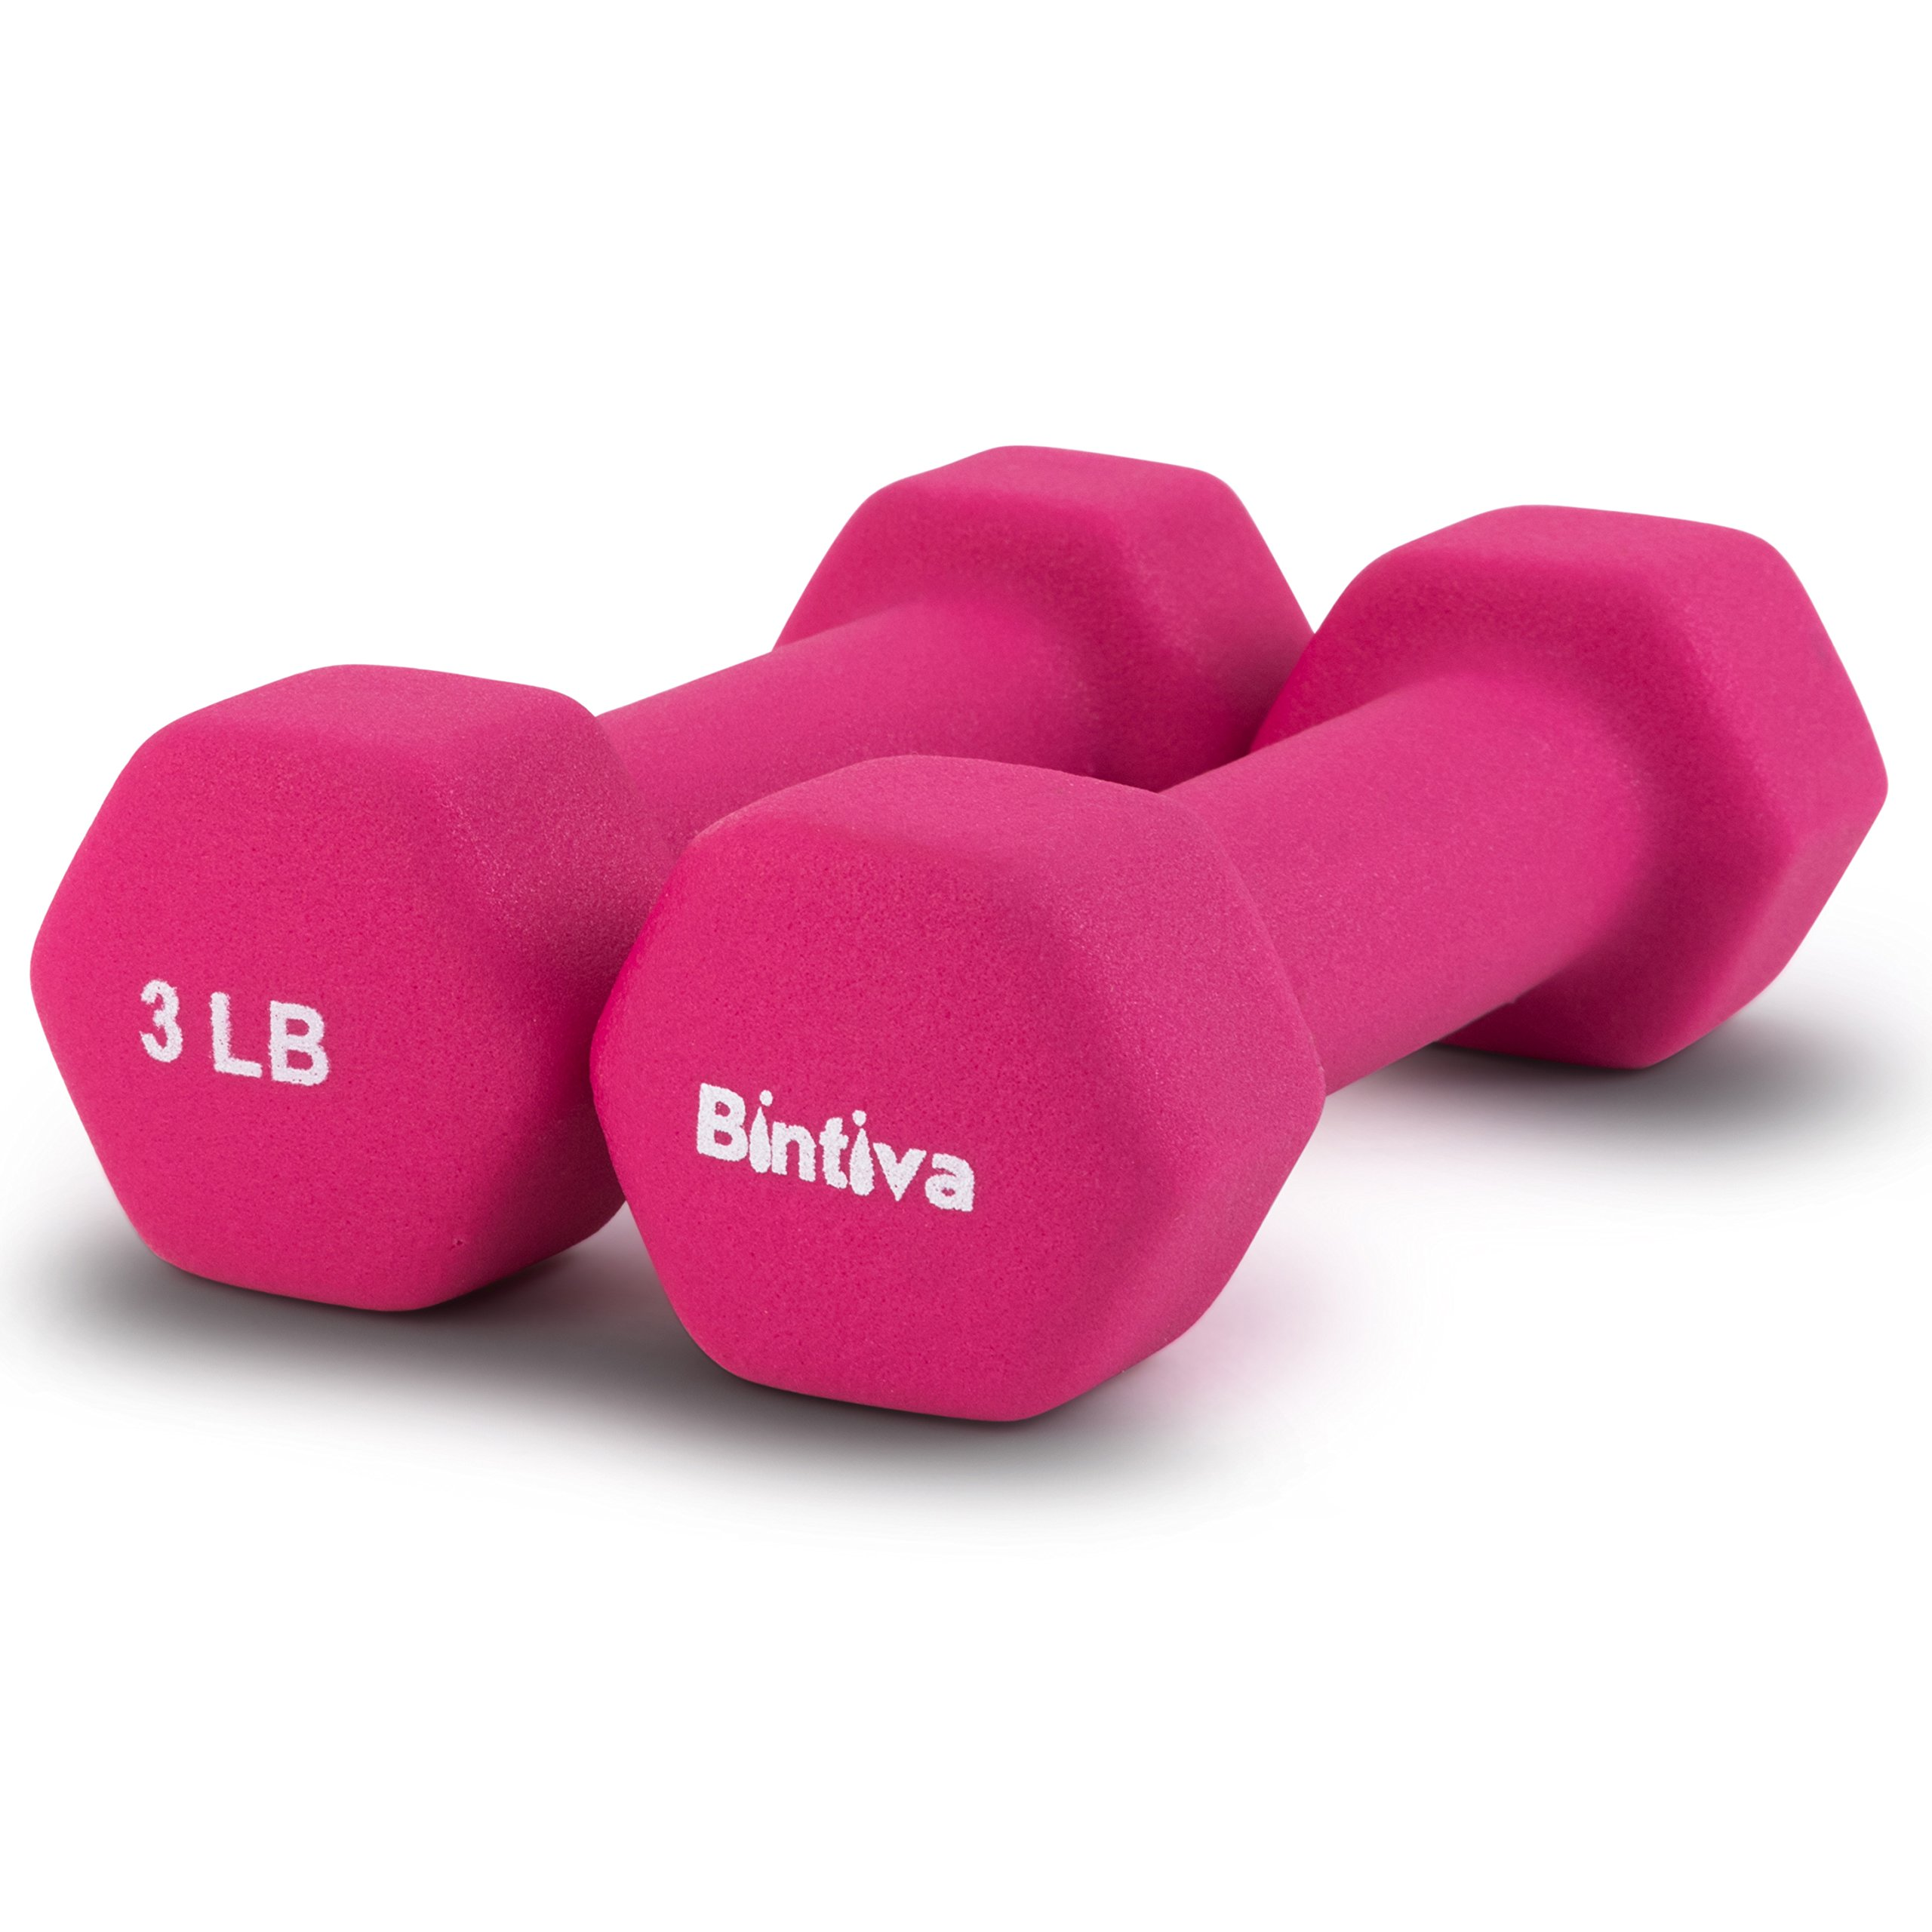 bintiva Professional Grade, Non Slip Grip, Neoprene Coated Dumbbells - 1 Pair